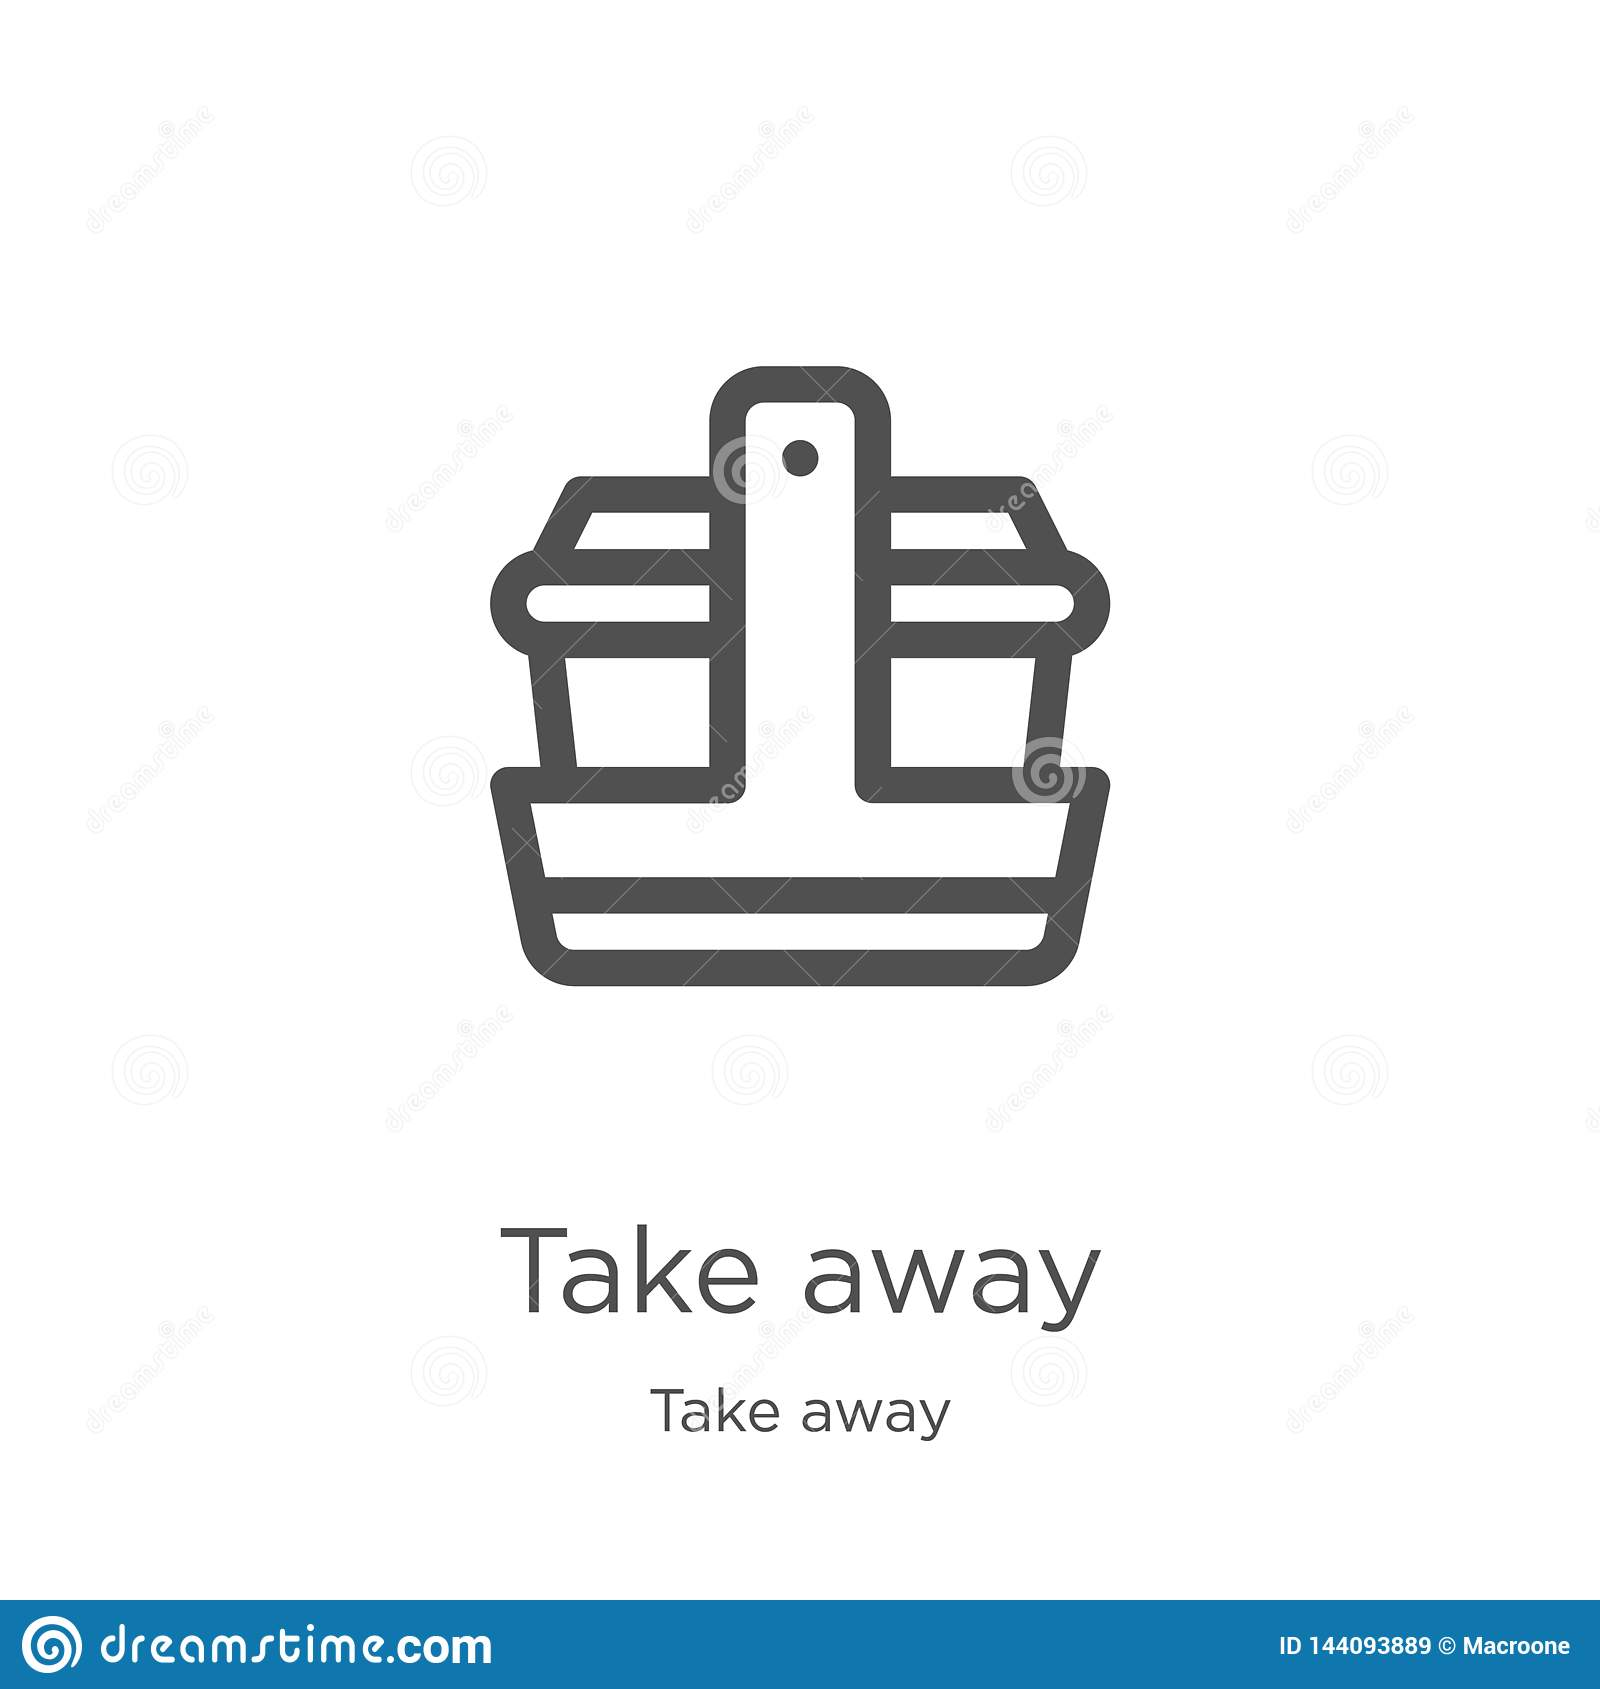 take away icon vector from take away collection. Thin line take away outline icon vector illustration. Outline, thin line take